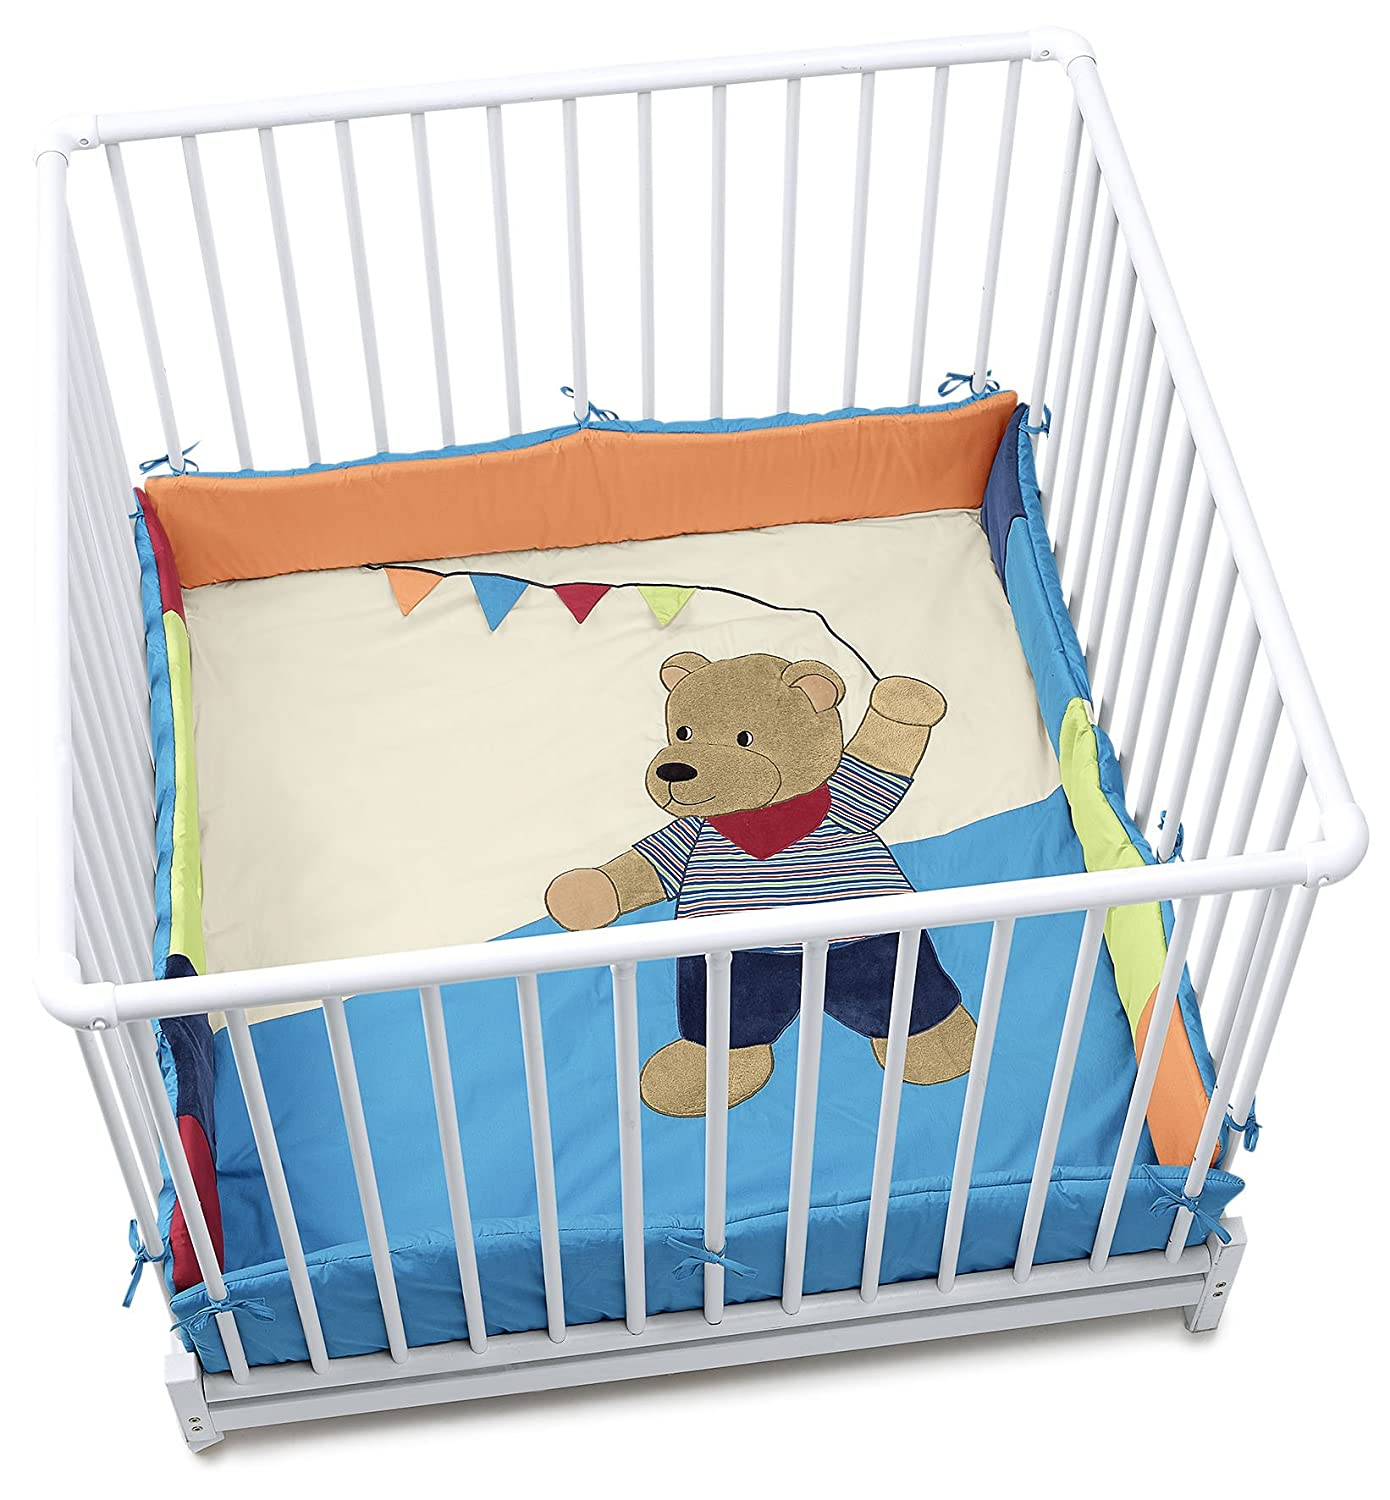 Sterntaler Playpen Pad (100 x 100 cm, Ben The Bear) 9141506